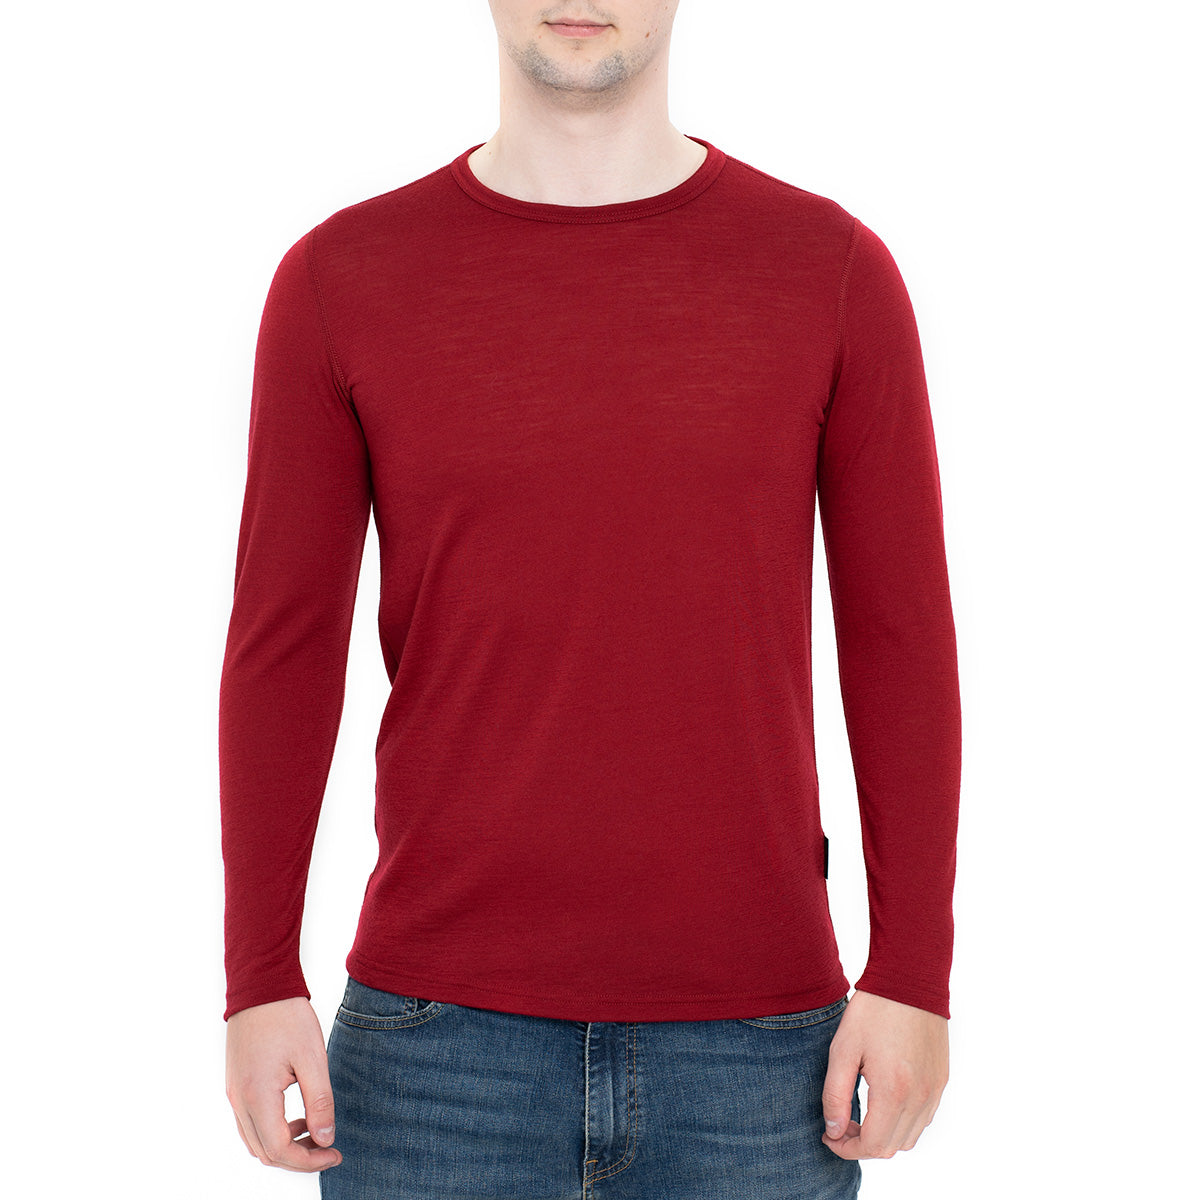 menique Men's Merino 160 Long Sleeve Crew Royal Cherry Color